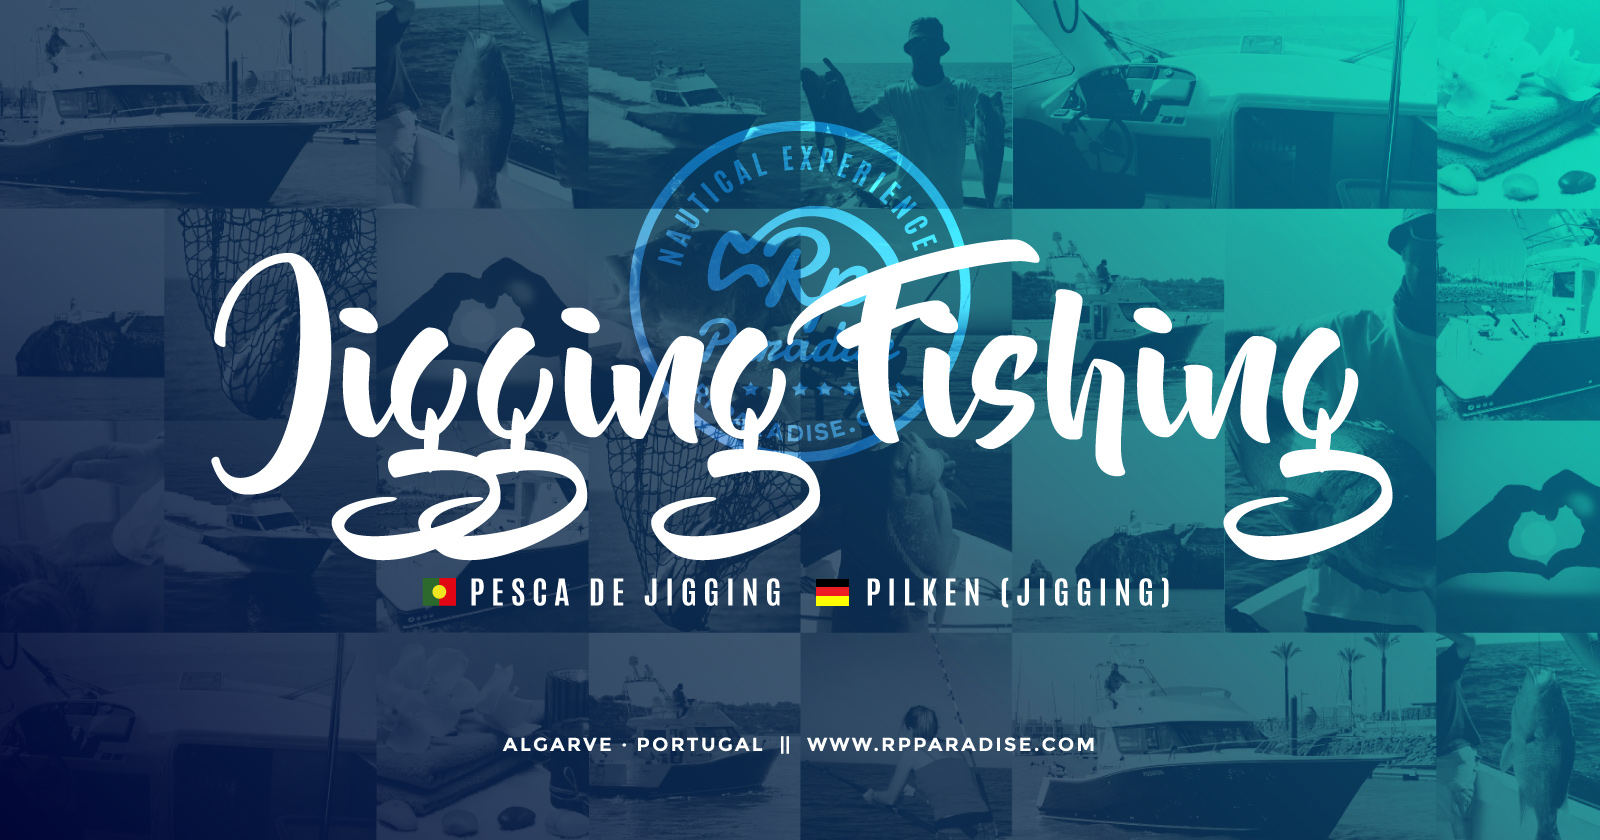 Jigging Fishing Portimão Algarve